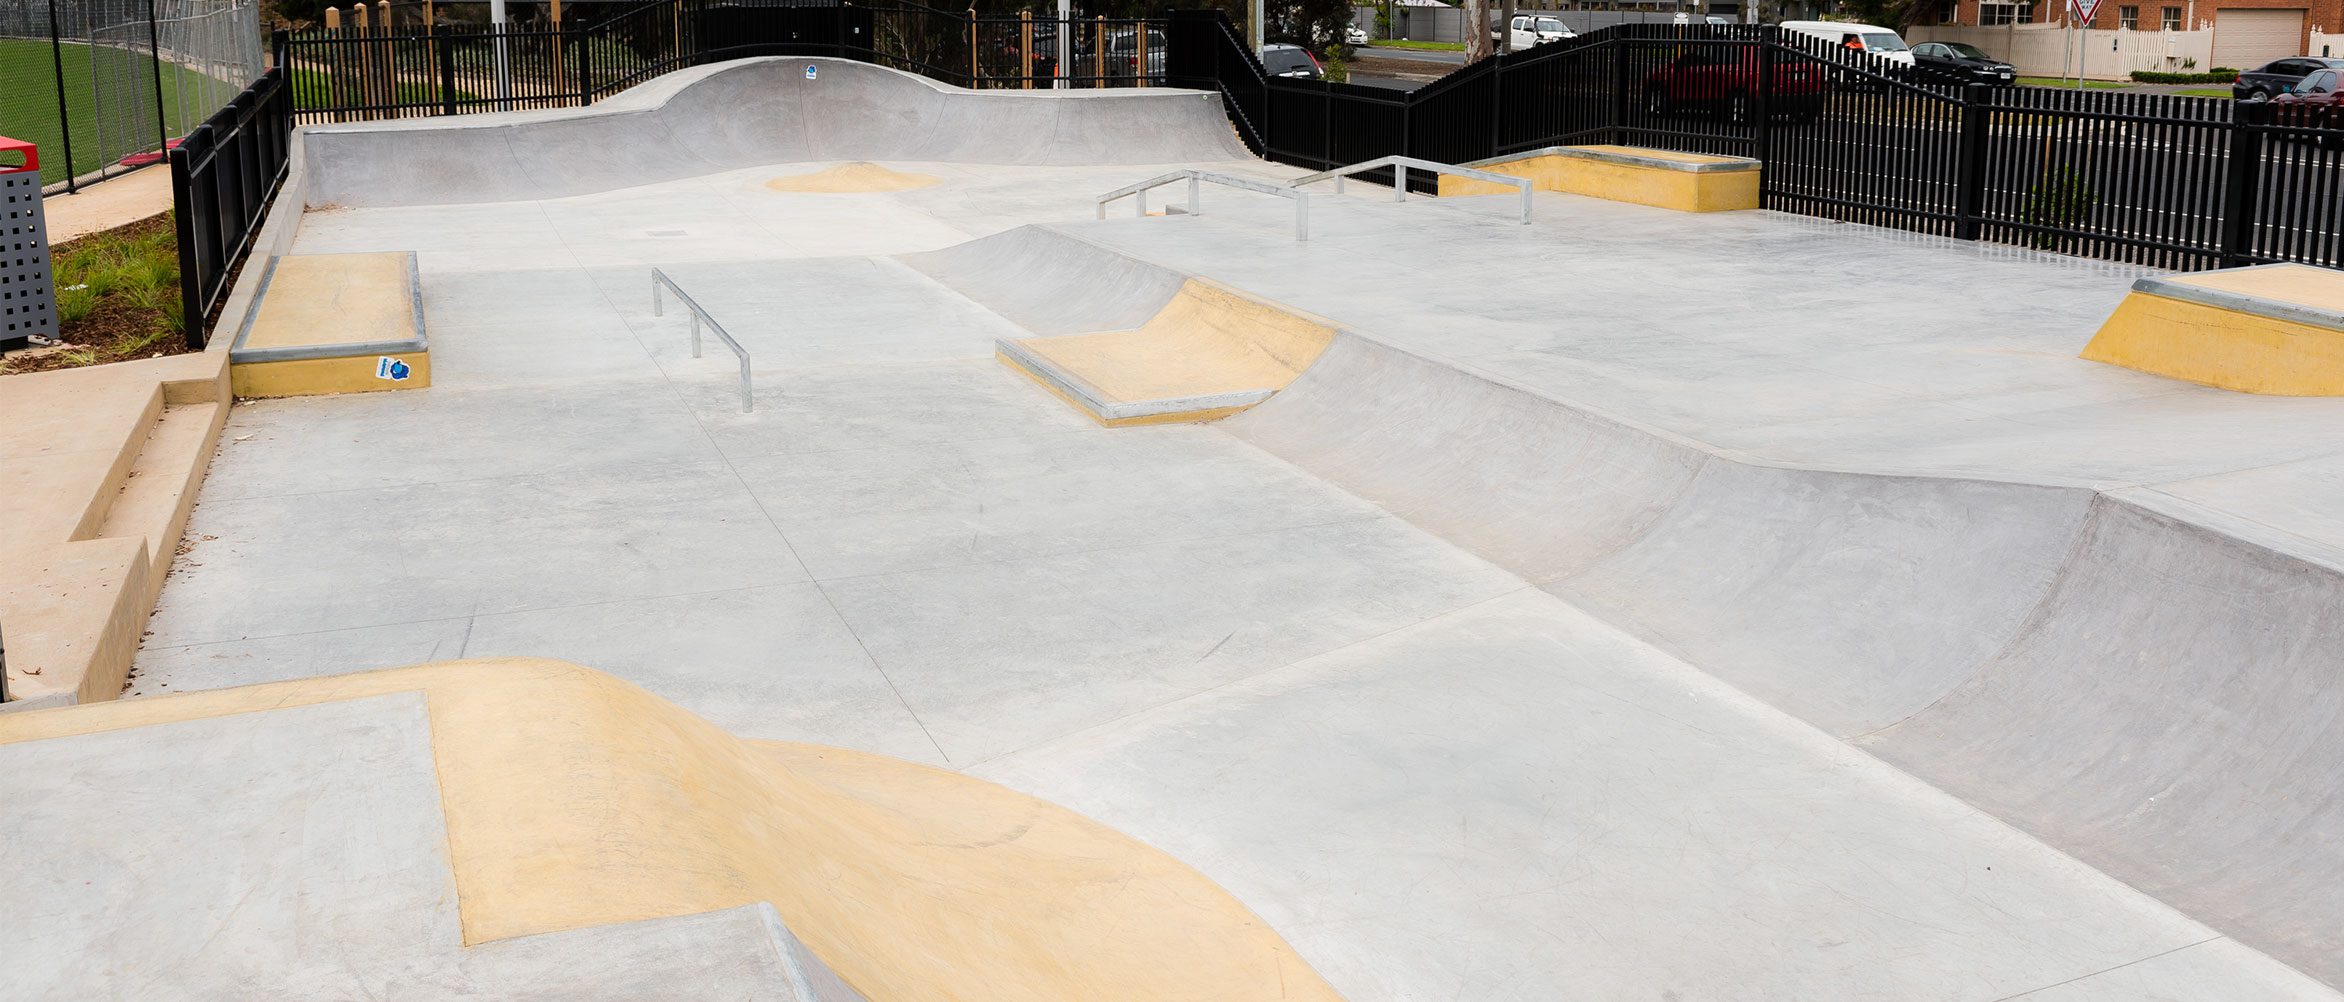 Bentleigh East skate park street section